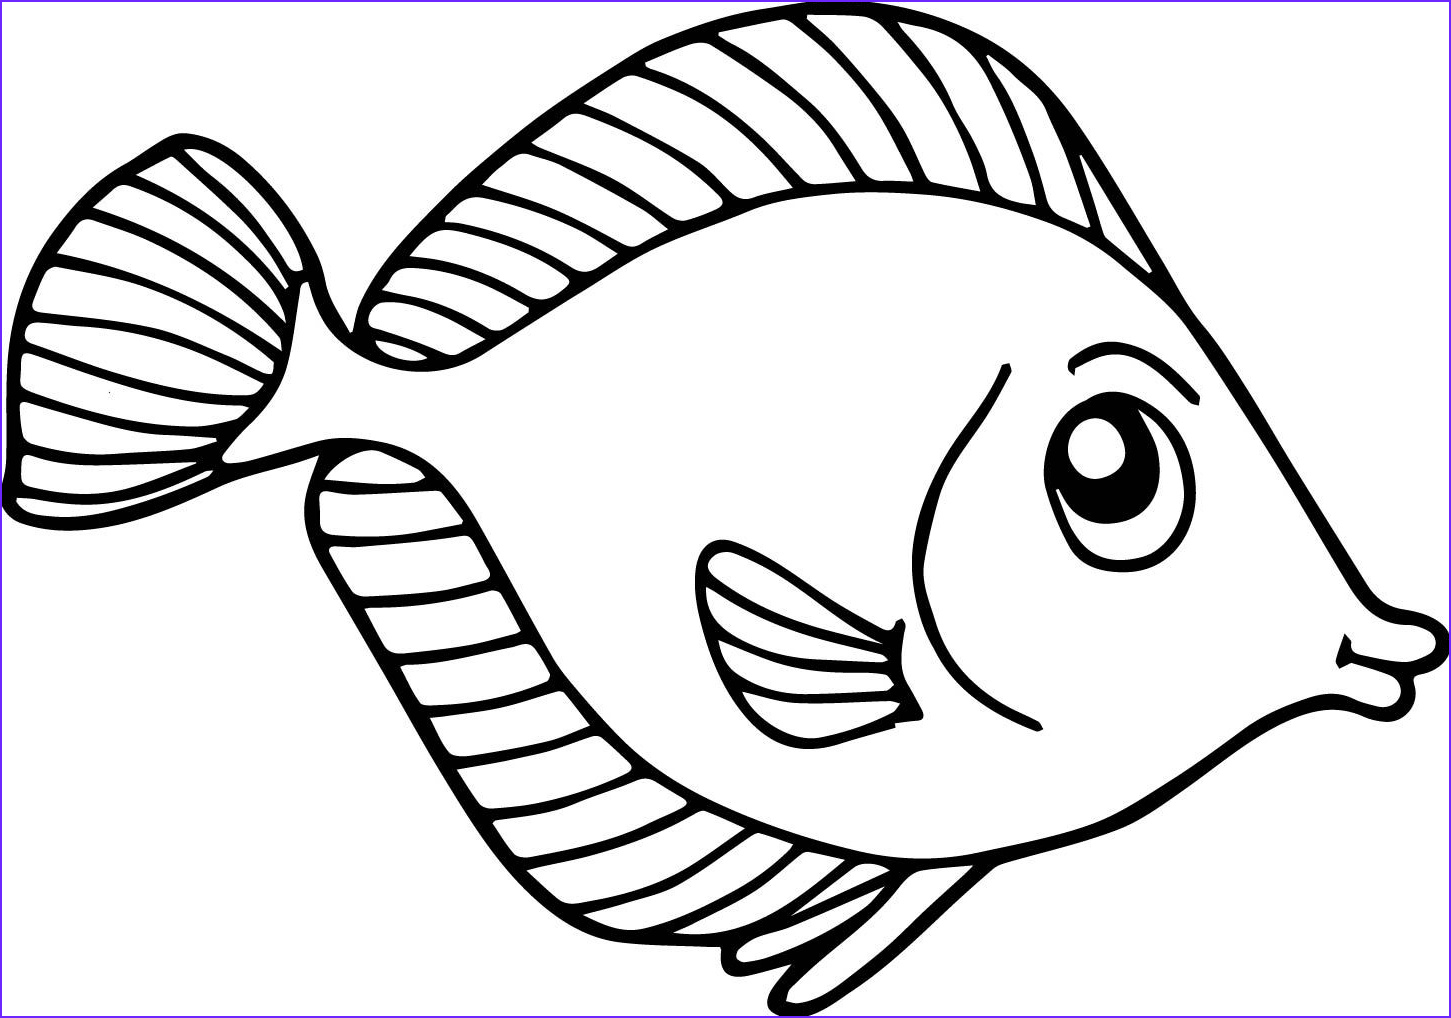 Fish Coloring Pages Pdf Elegant Photos Fish Coloring Pages for Kids Preschool and Kindergarten